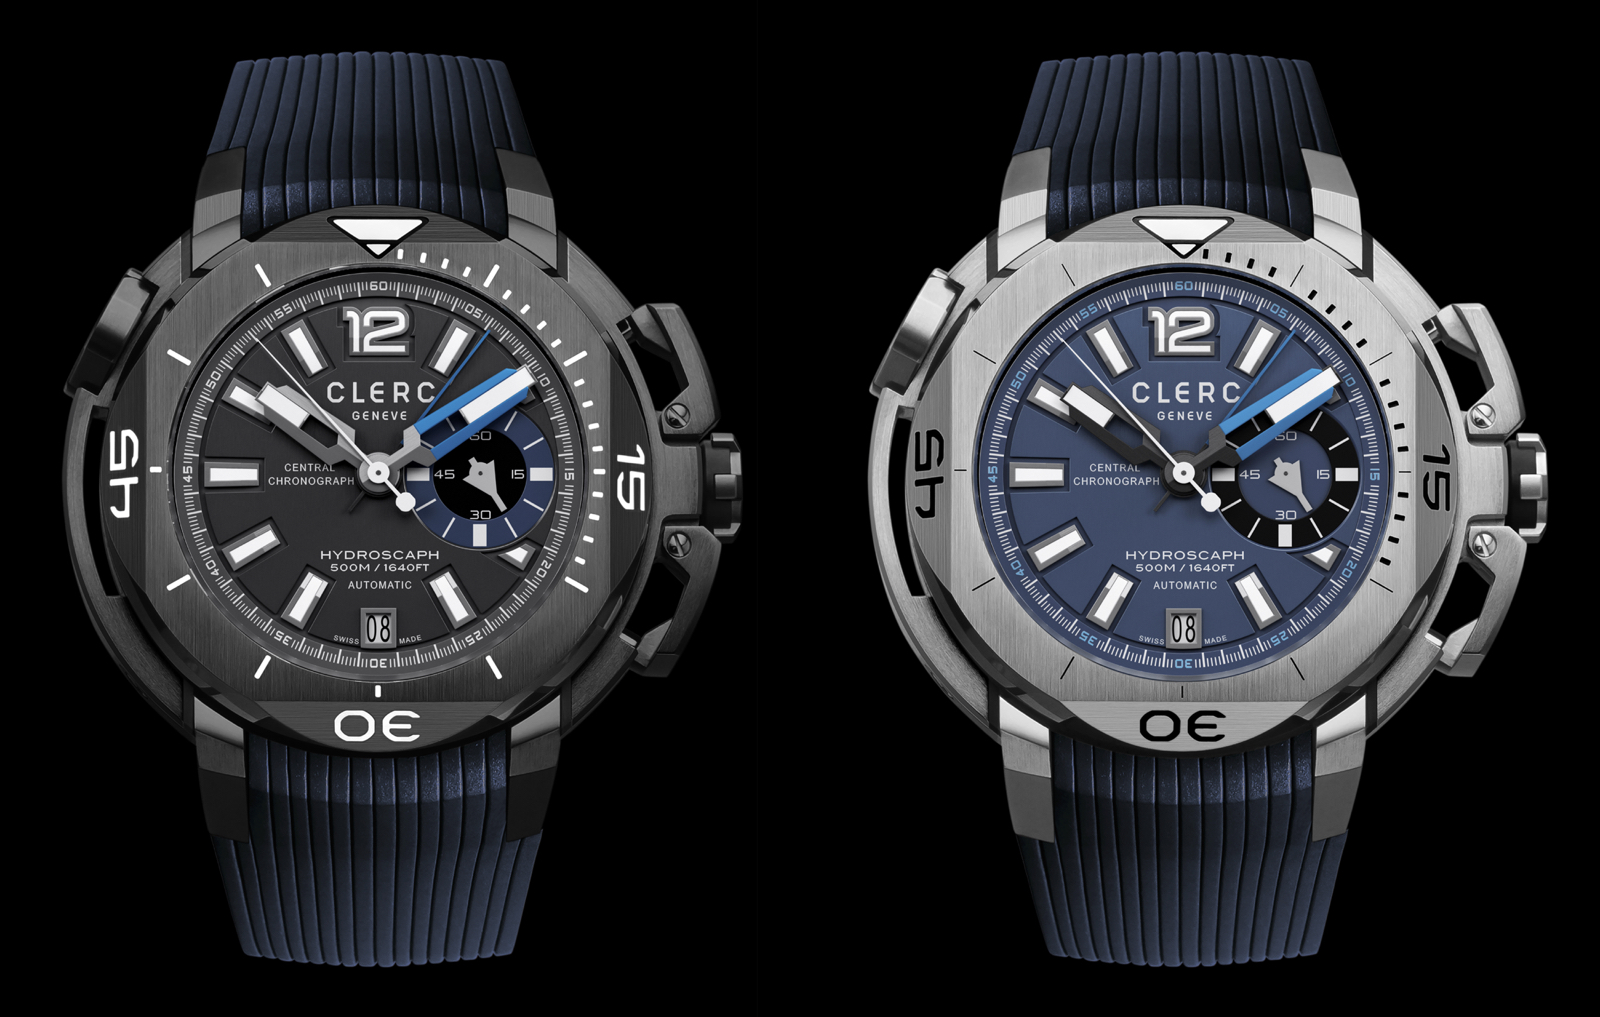 Clerc Hydroscaph Central Chronograph Small Second